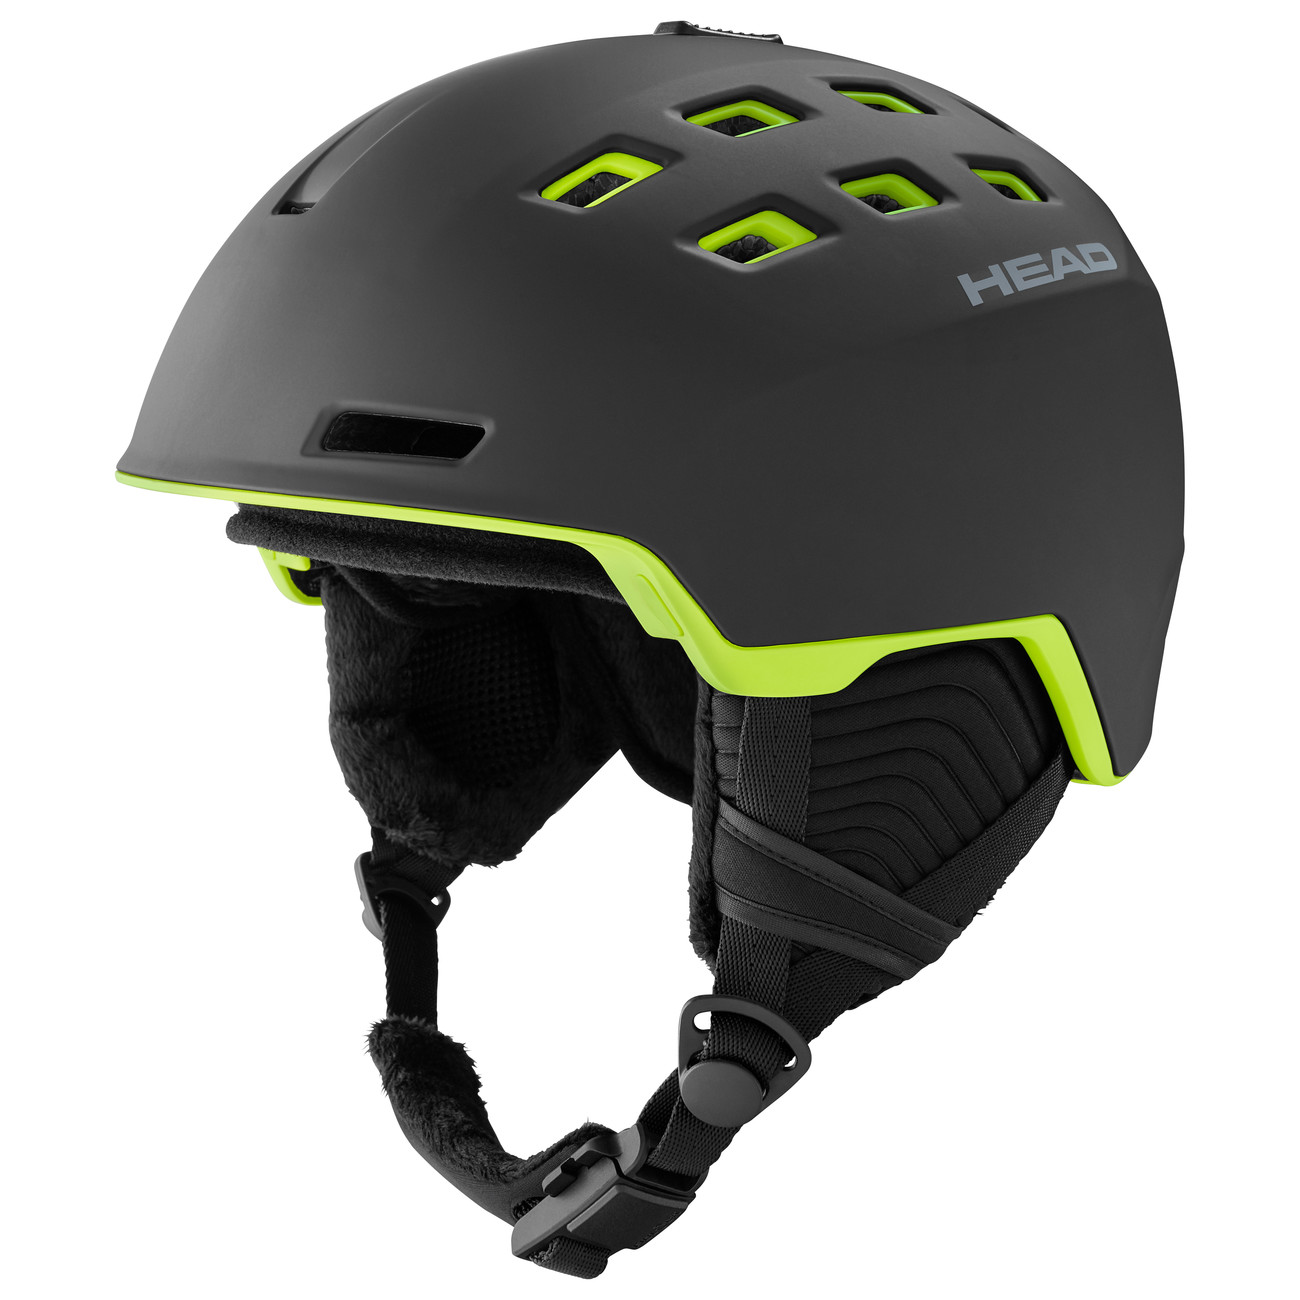 HEAD CASCO REV black/lime - 2021